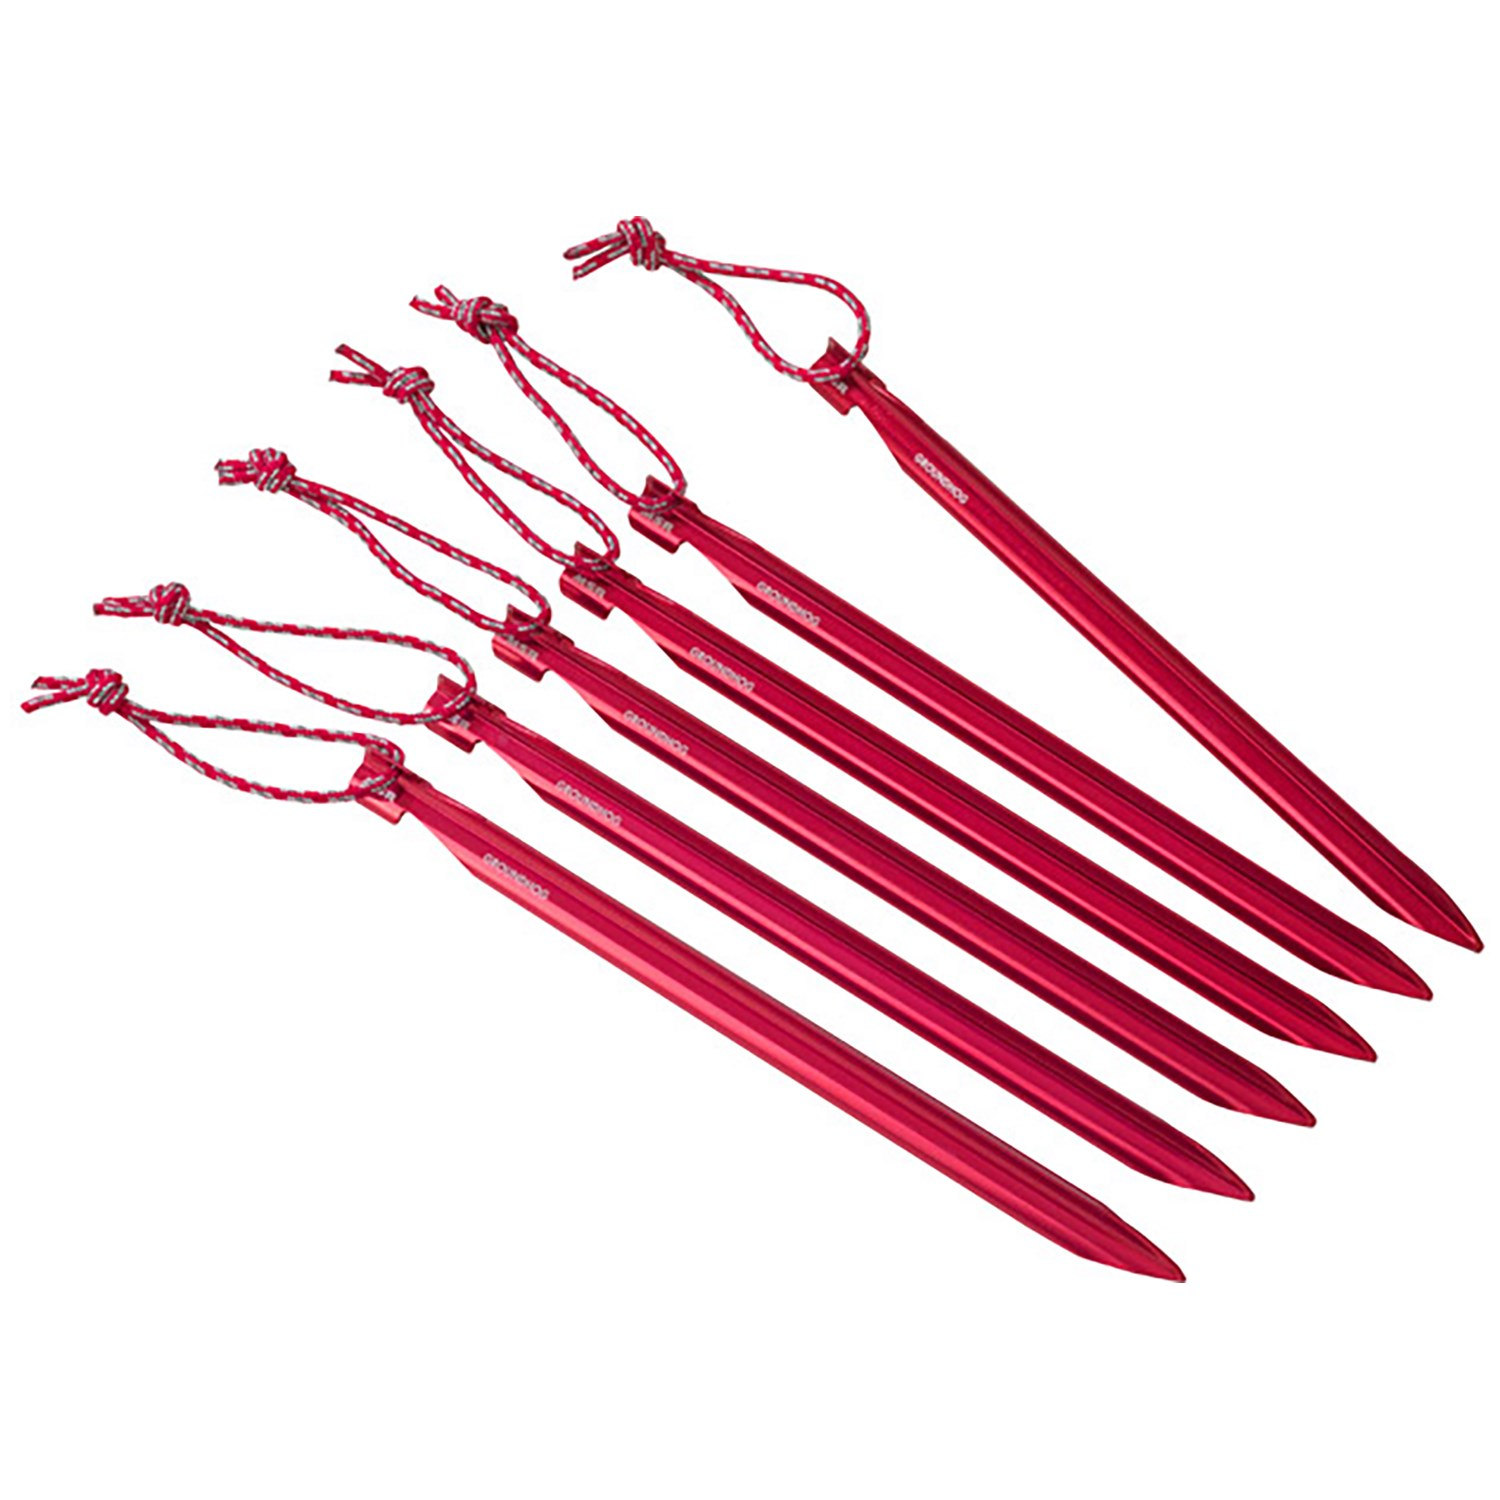 MSR Groundhog Tent Stakes